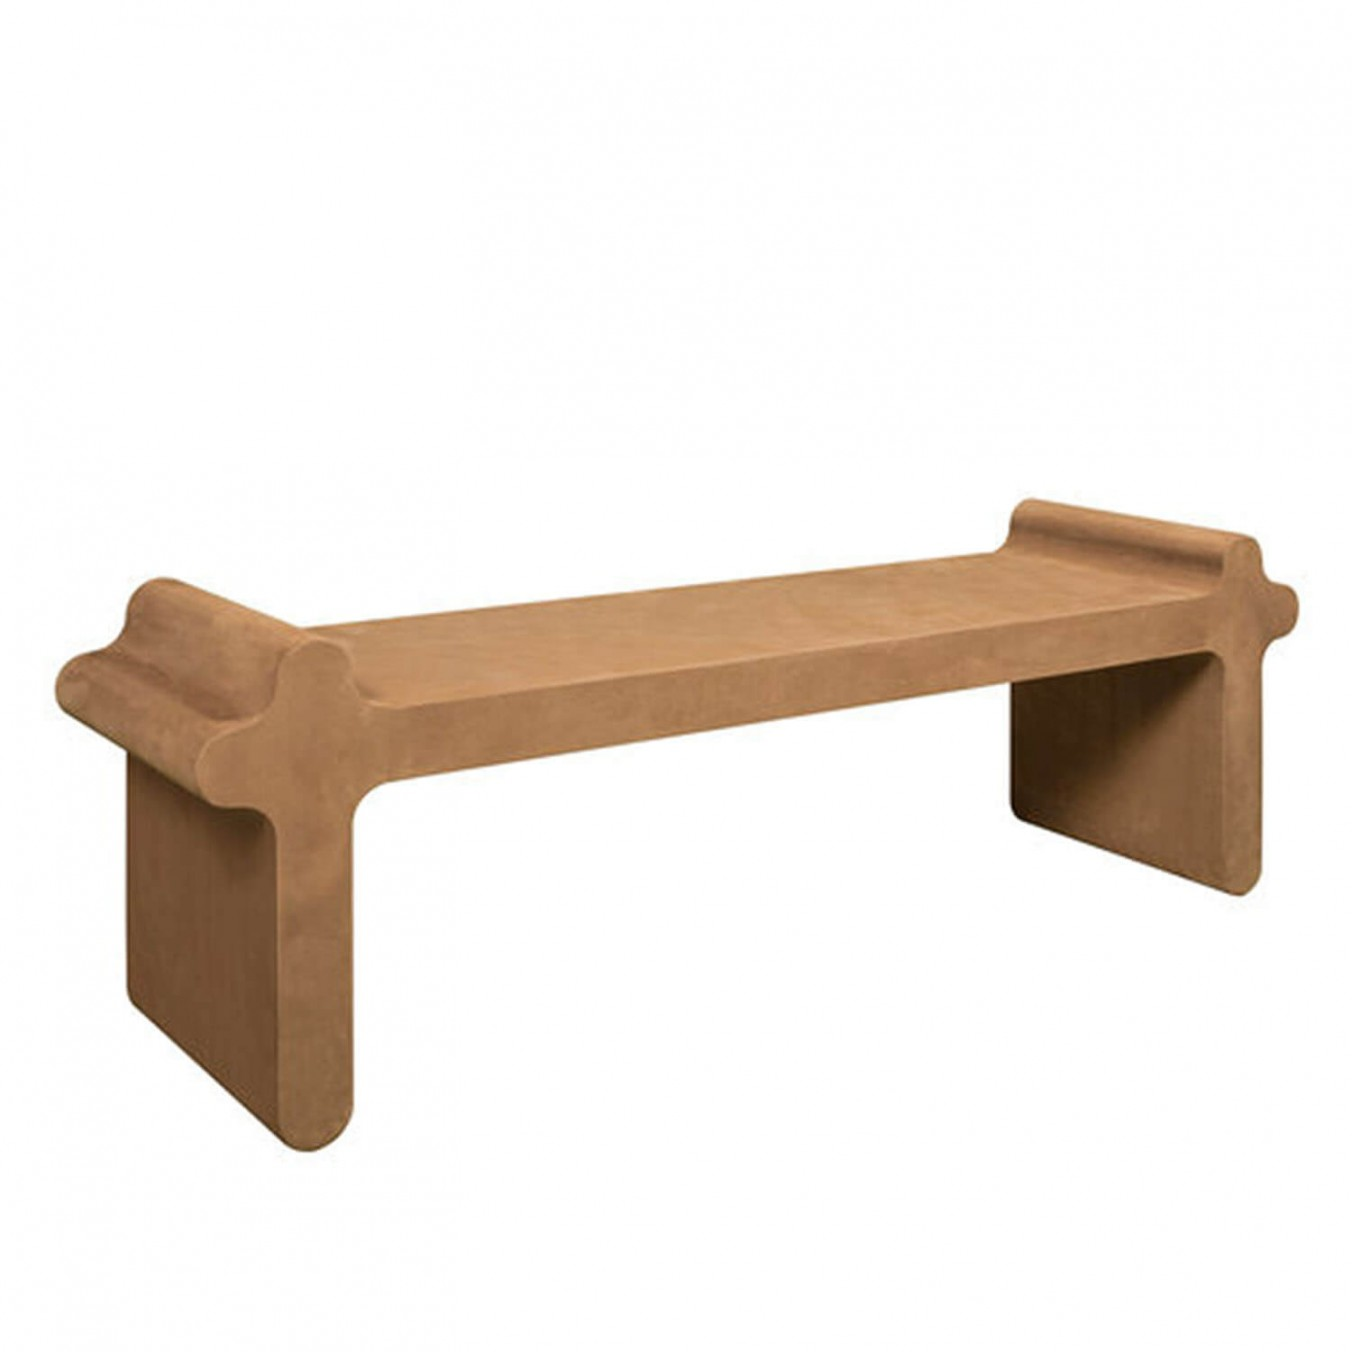 OSSICLE LEATHER BENCH N°1